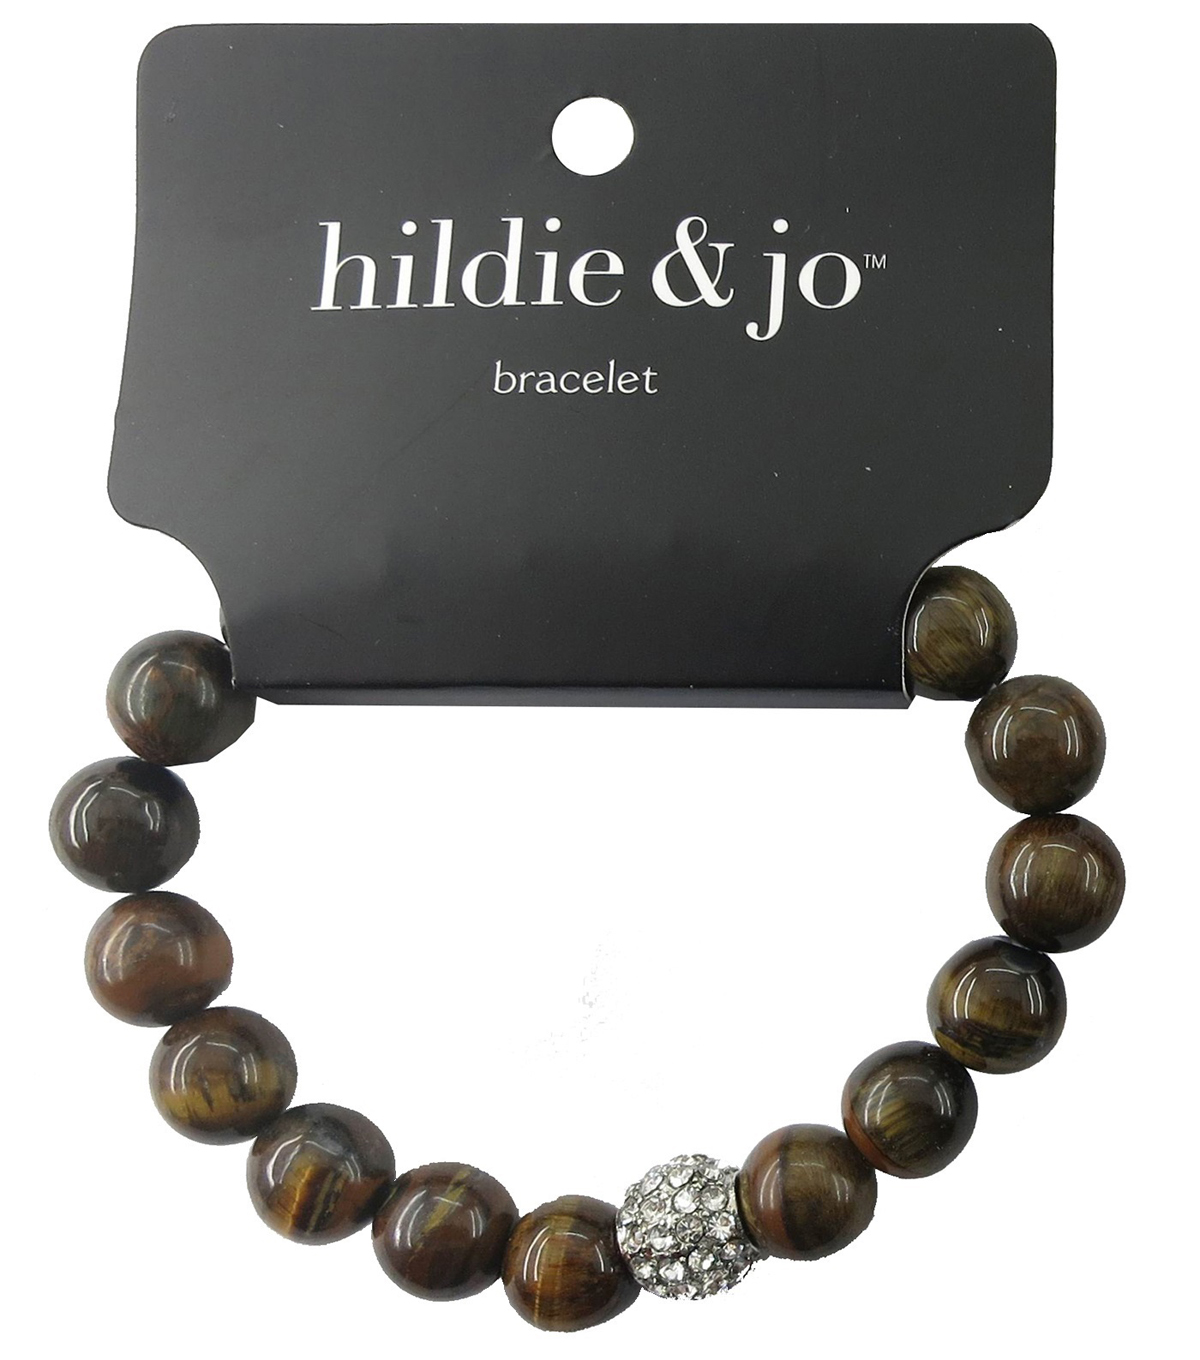 hildie & jo Stone Beads Stretch Bracelet-Black/Brown with Crystal